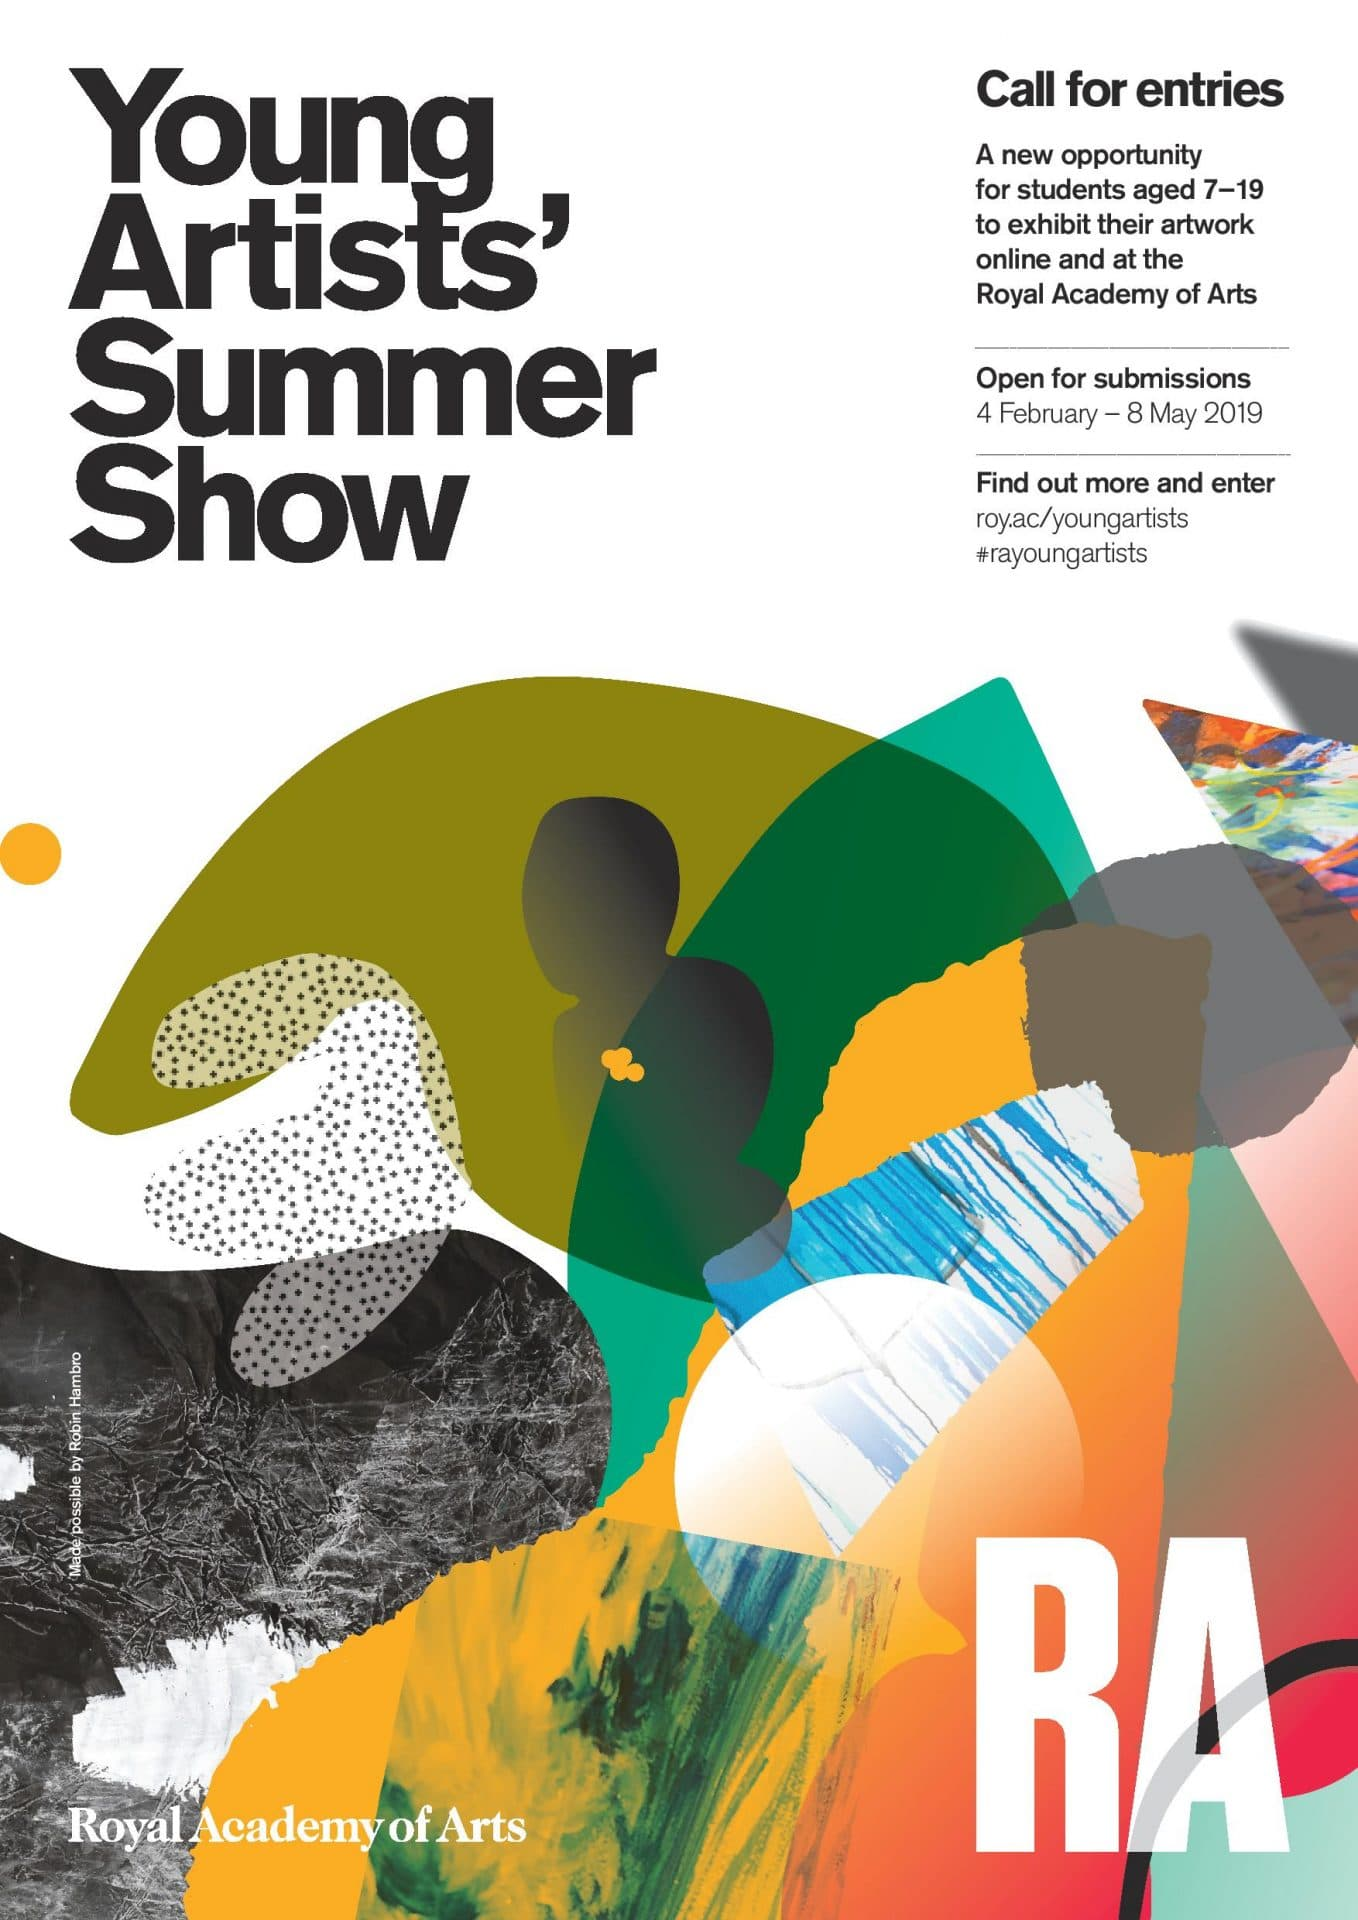 Want to exhibit your artwork at the Royal Academy Gallery